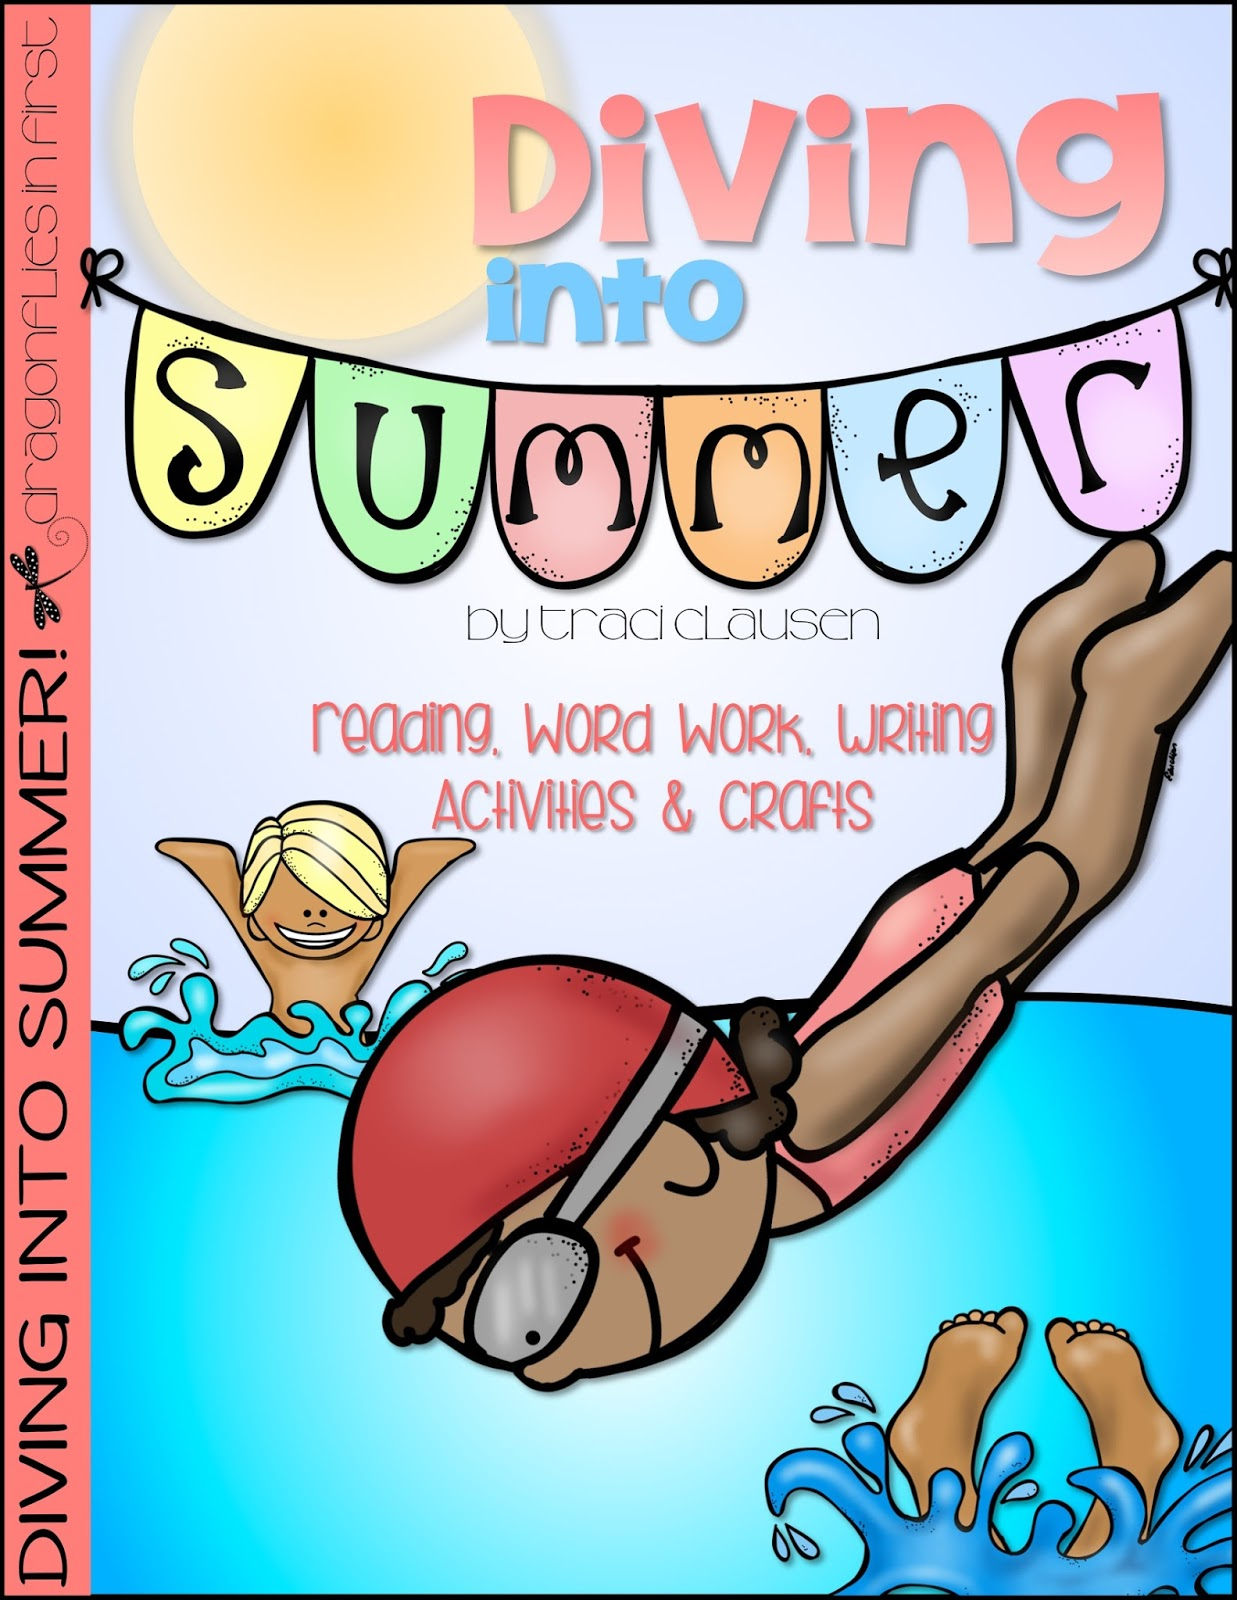 Diving into Summer – Reading, Word Work, Writing Activities, & Crafts